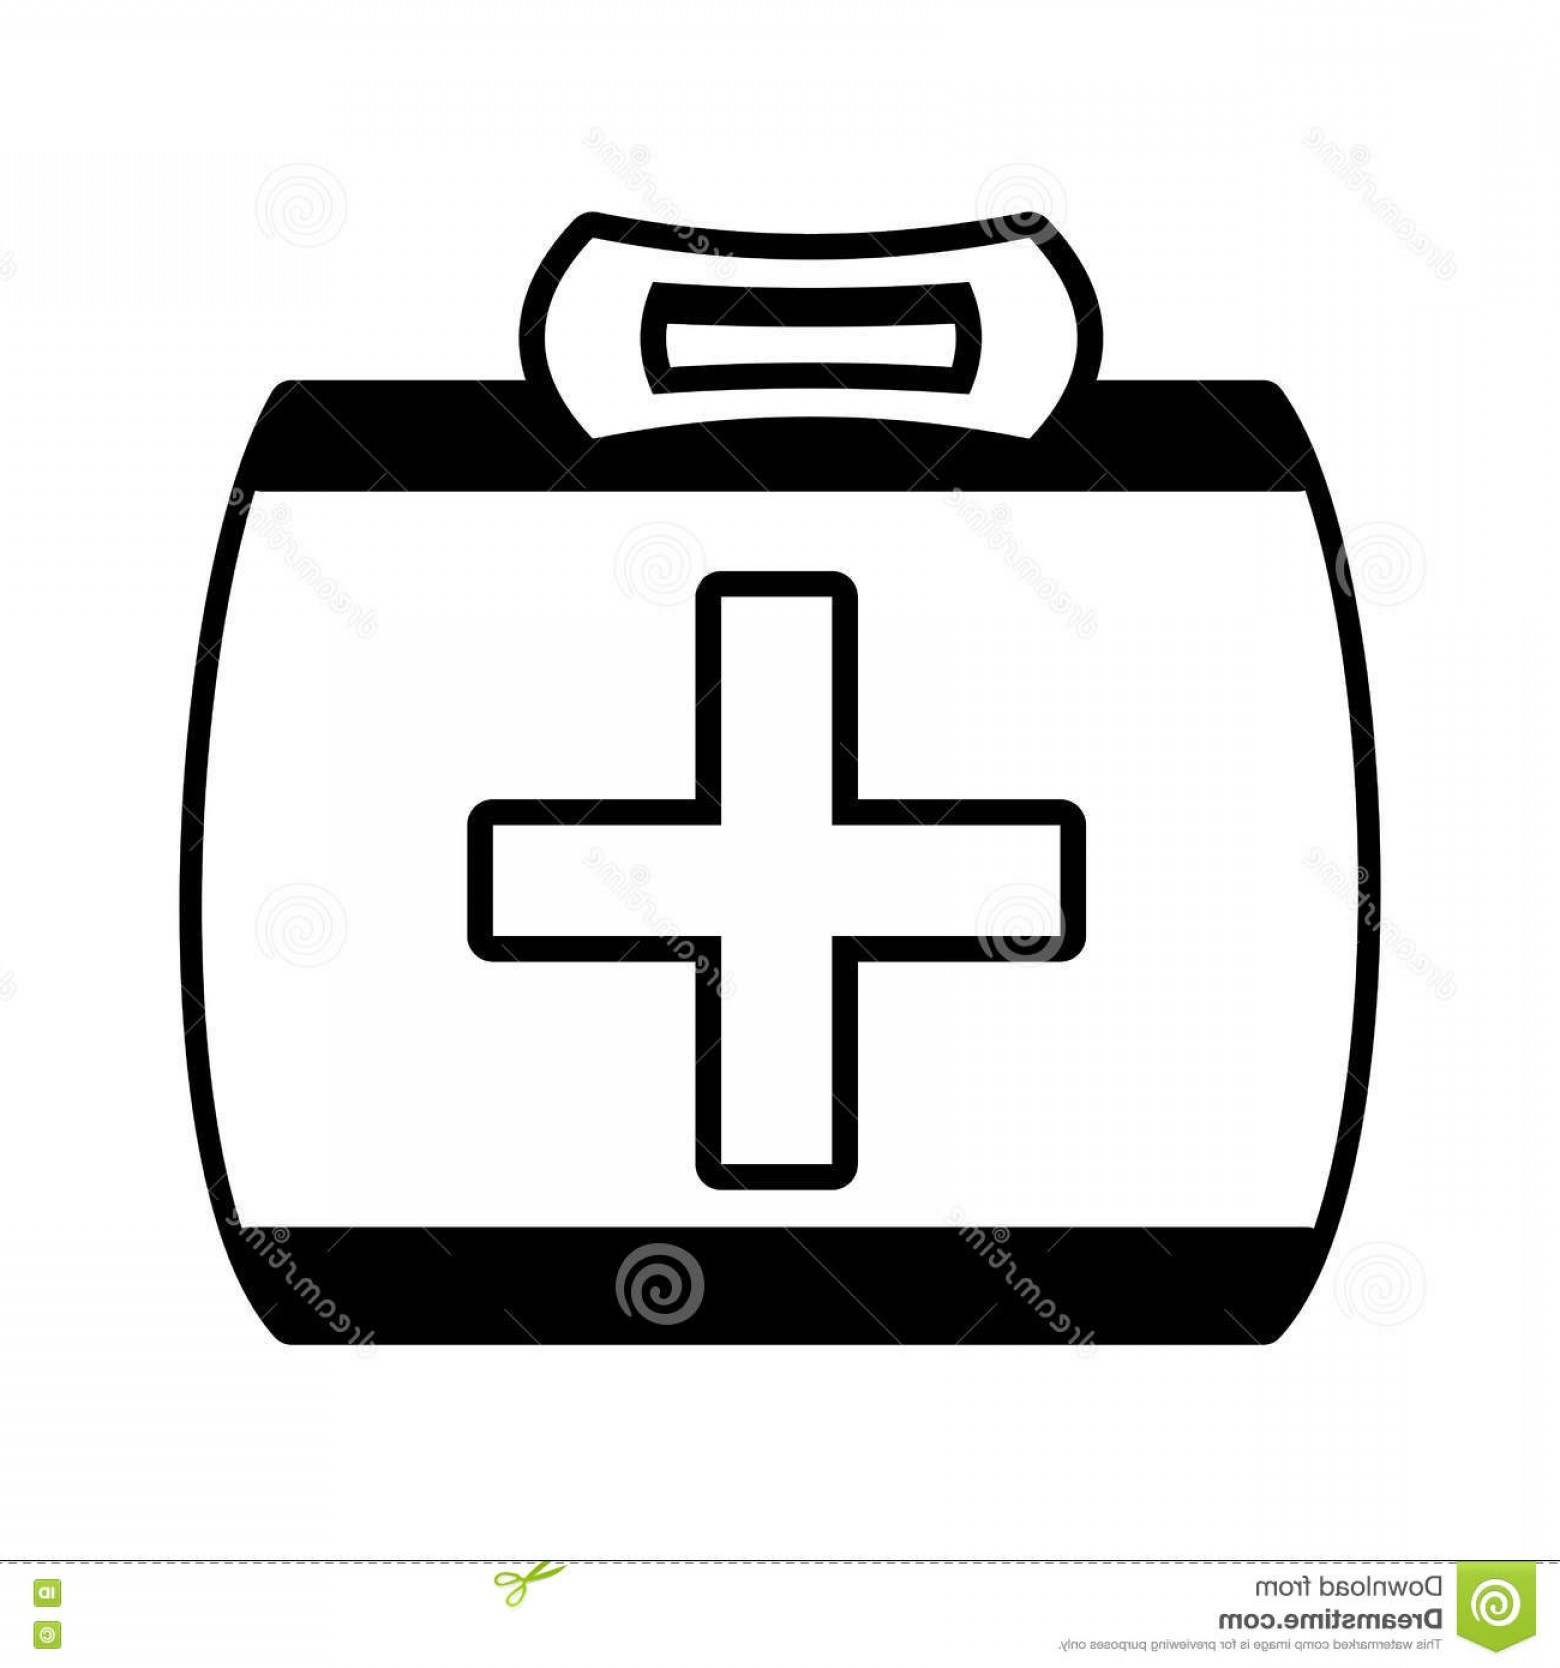 1560x1668 Stock Illustration Outline Kit First Aid Cross Emergency Medical